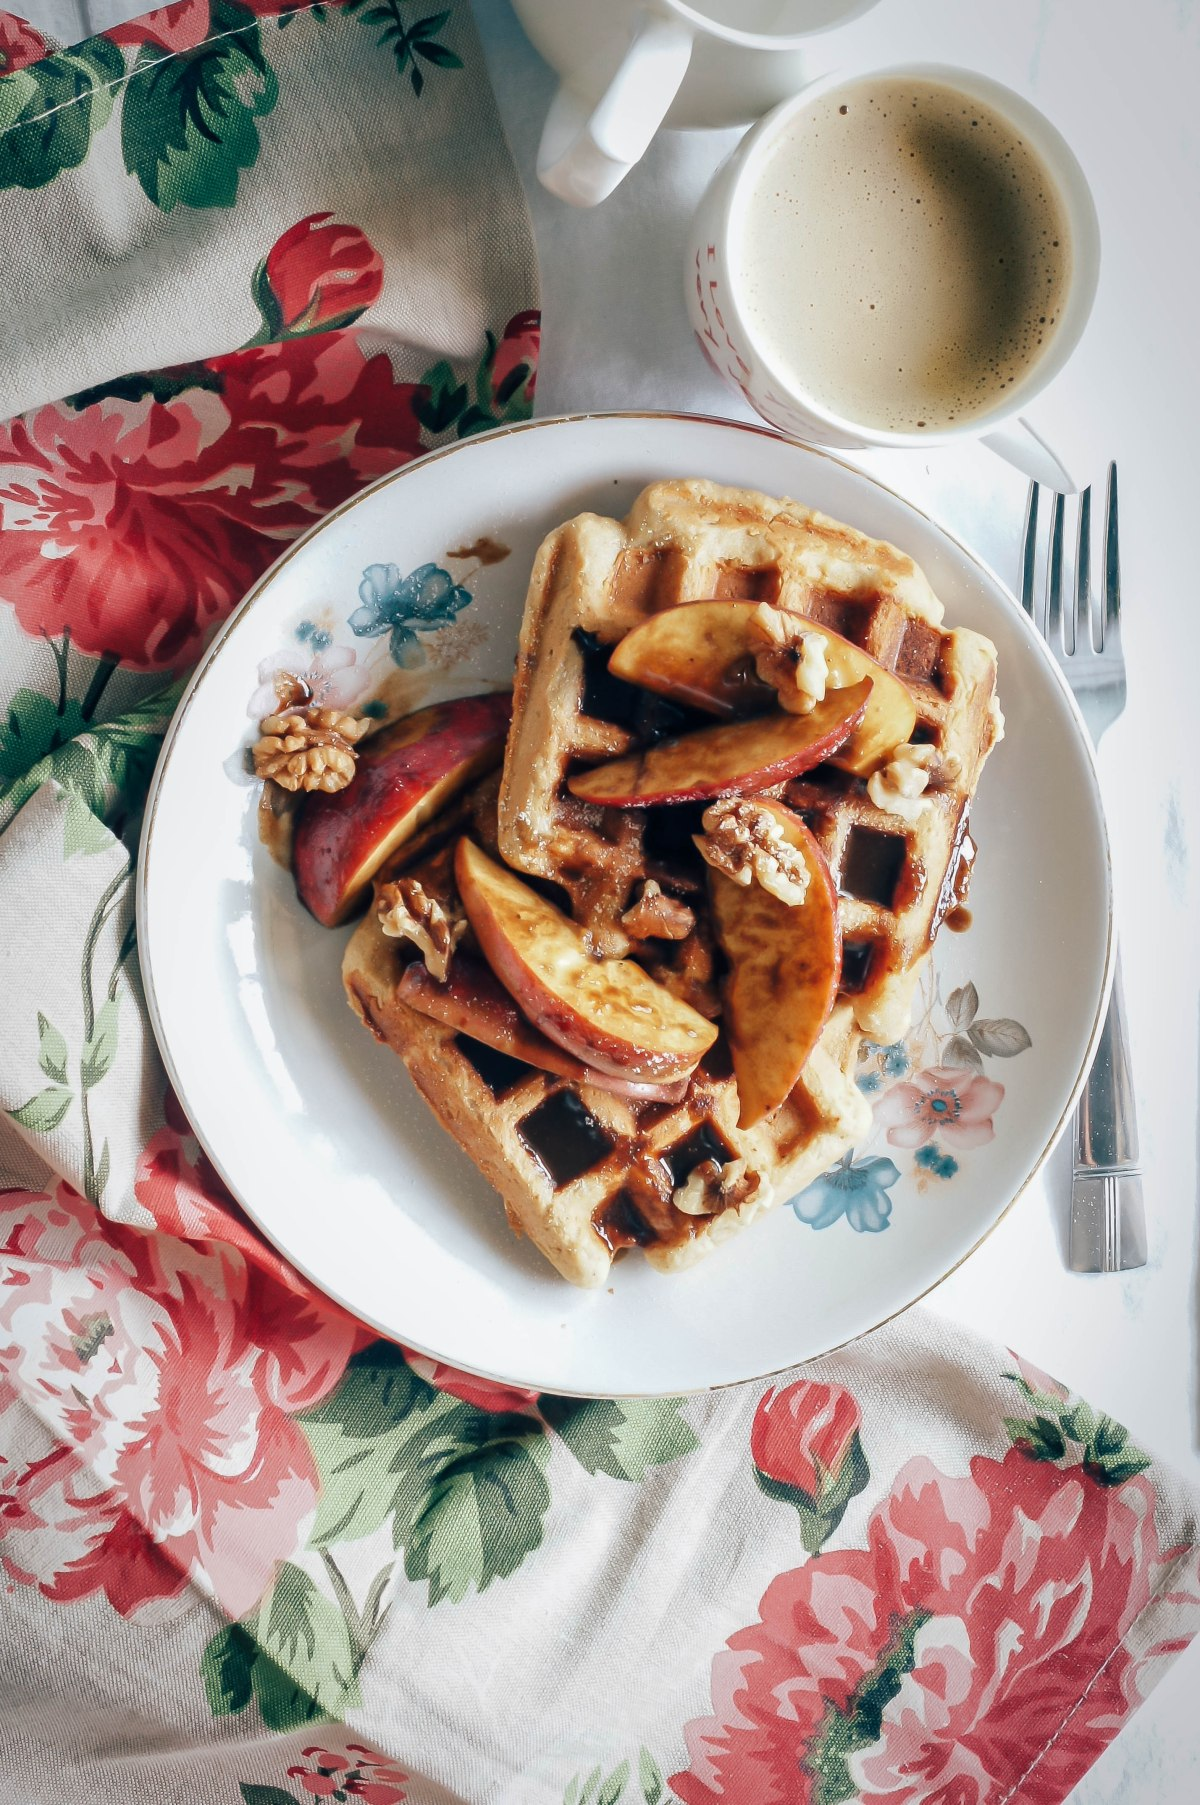 Whole wheat waffles with caramel poached apples andnuts